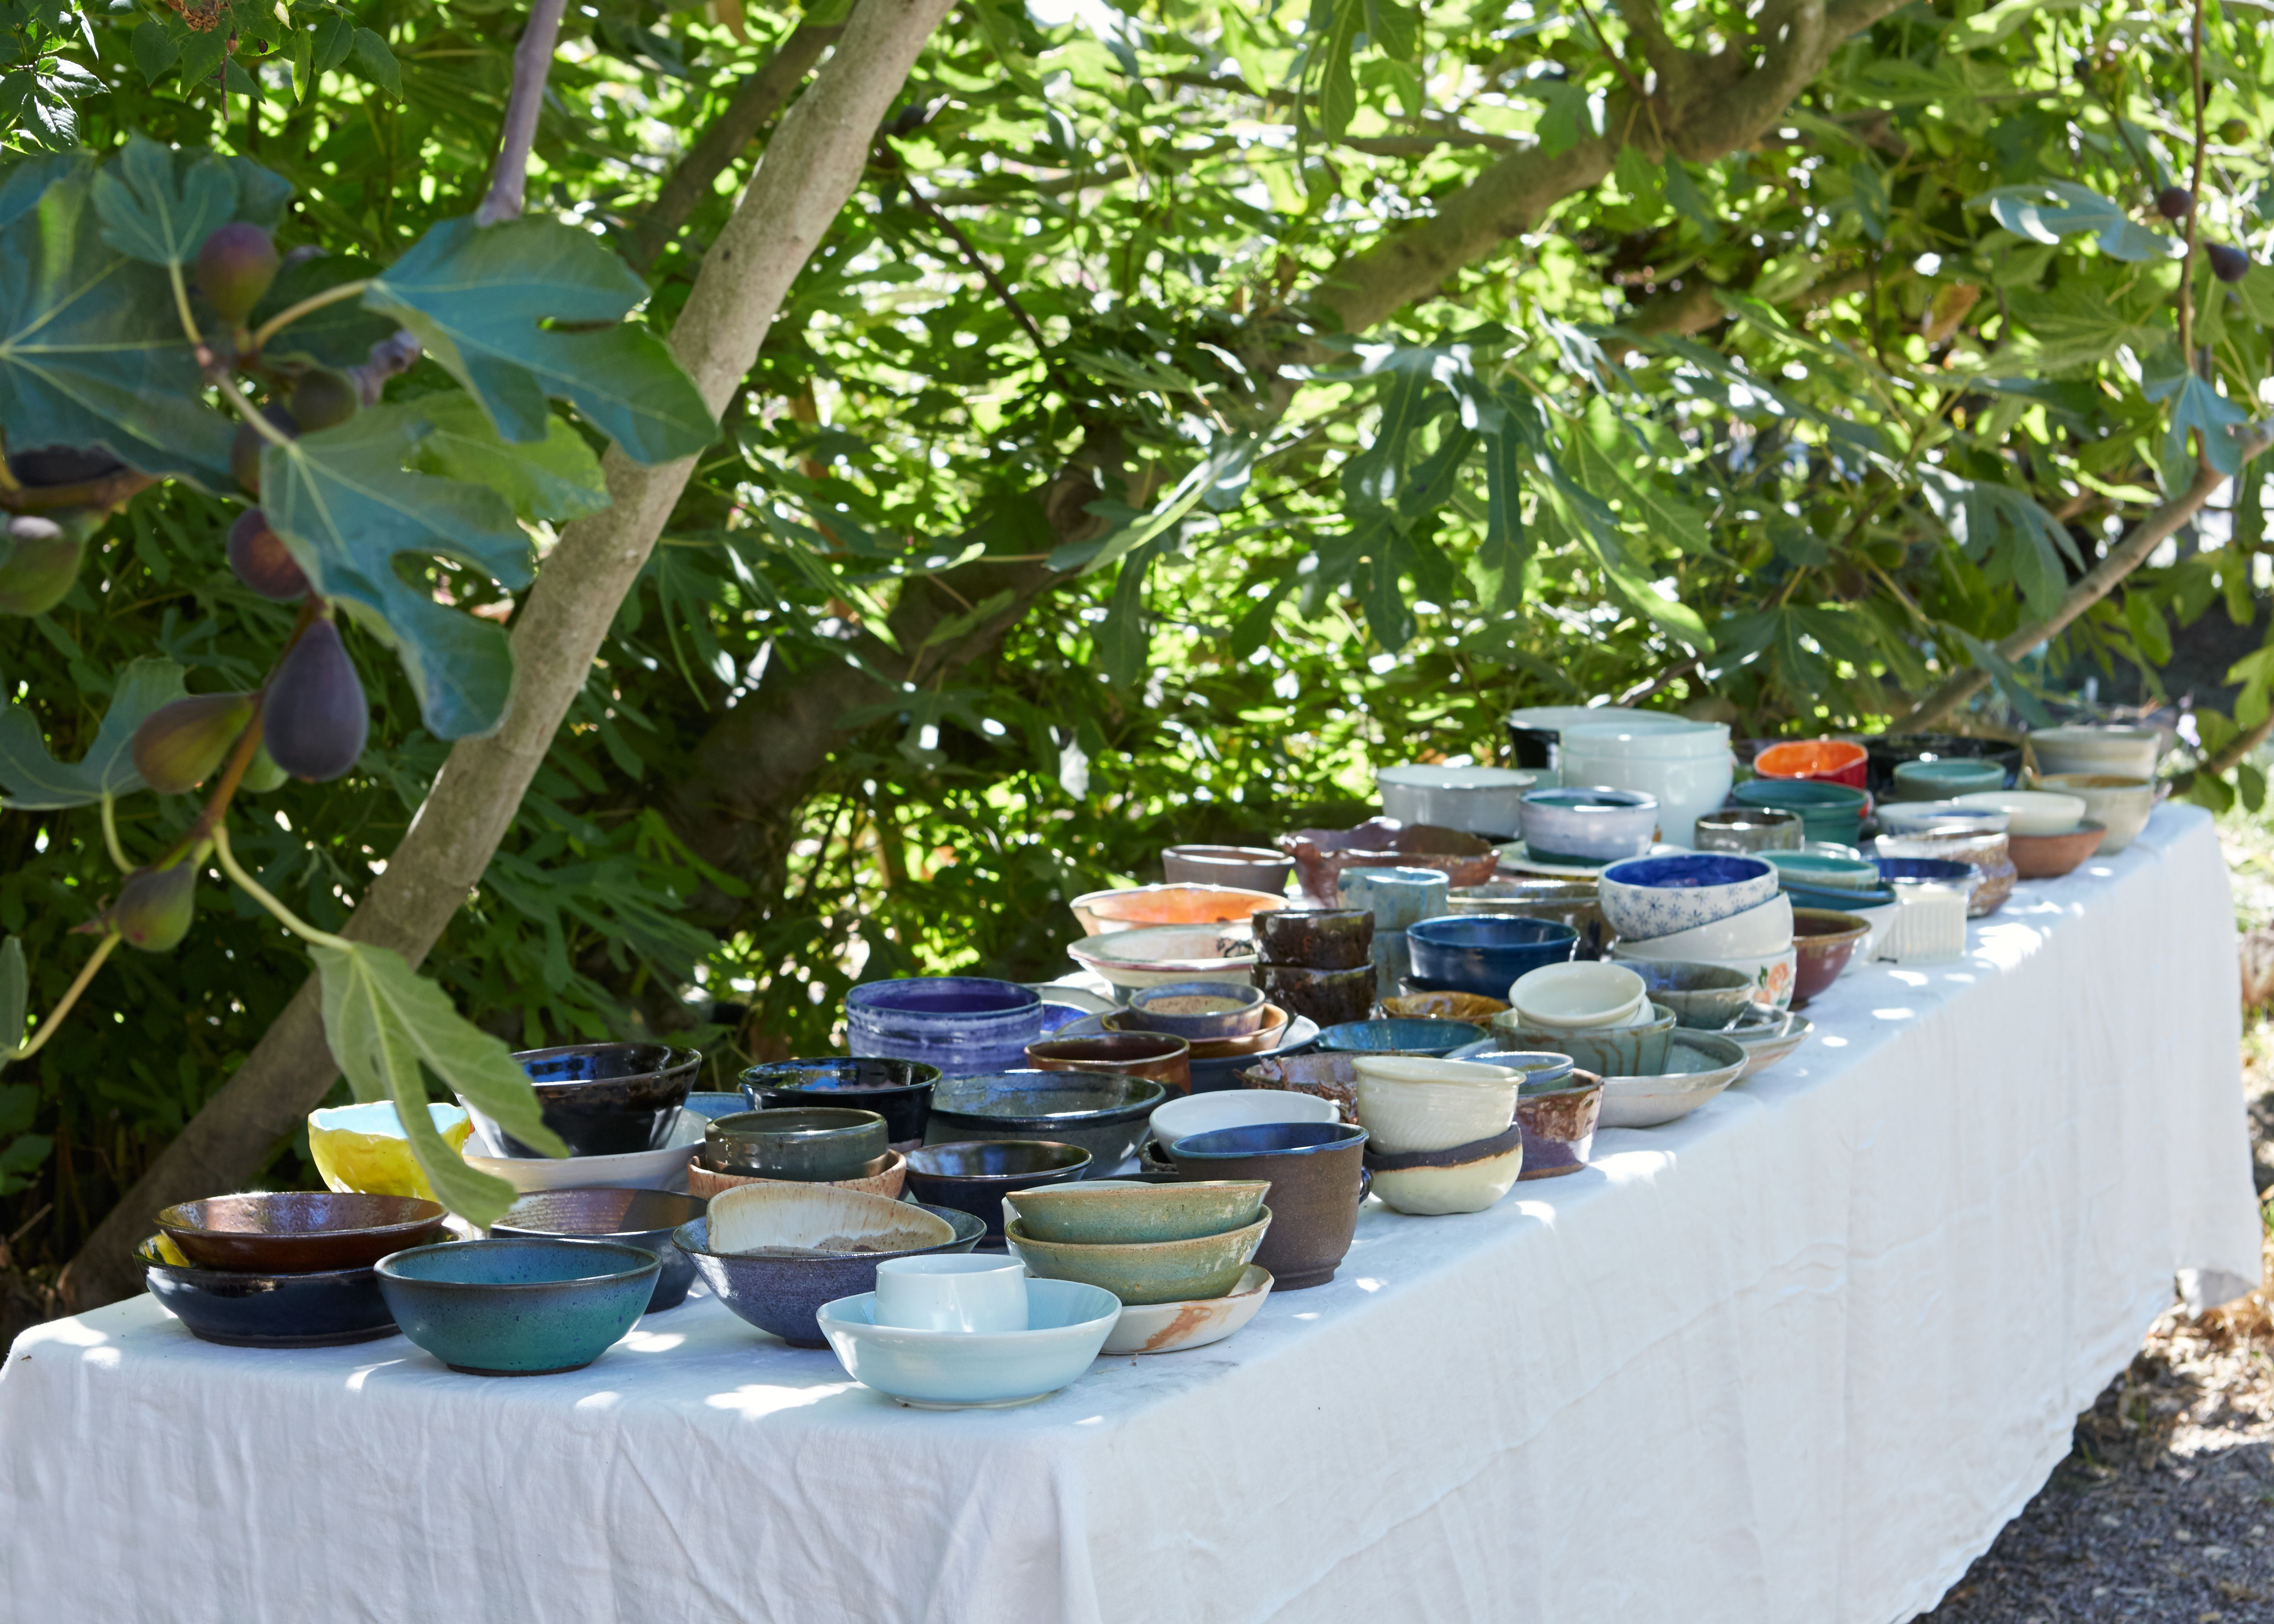 How To Host An Empty Bowls Fundraiser To Fight Hunger